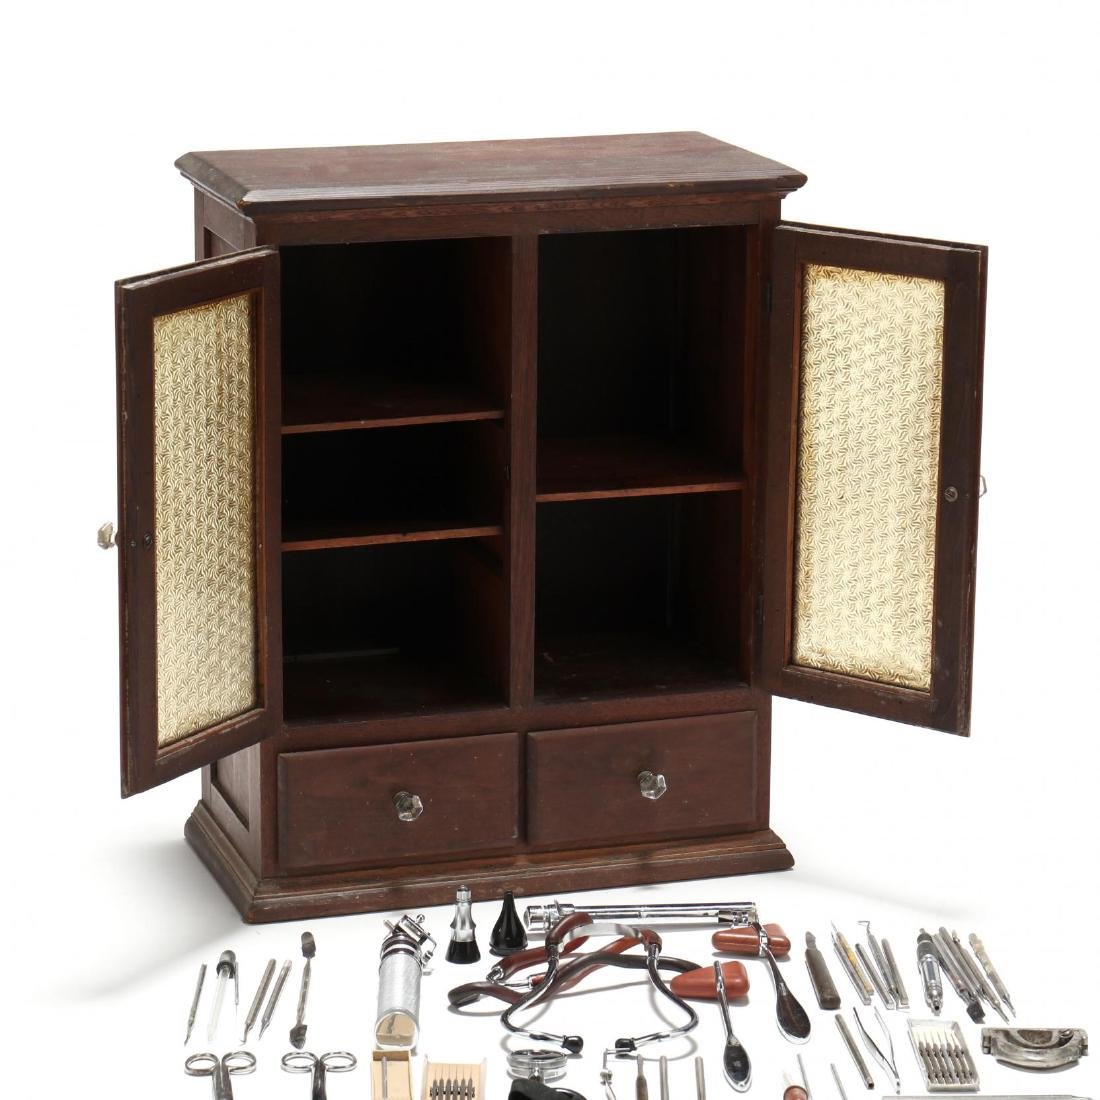 Small Medical Cabinet - 3